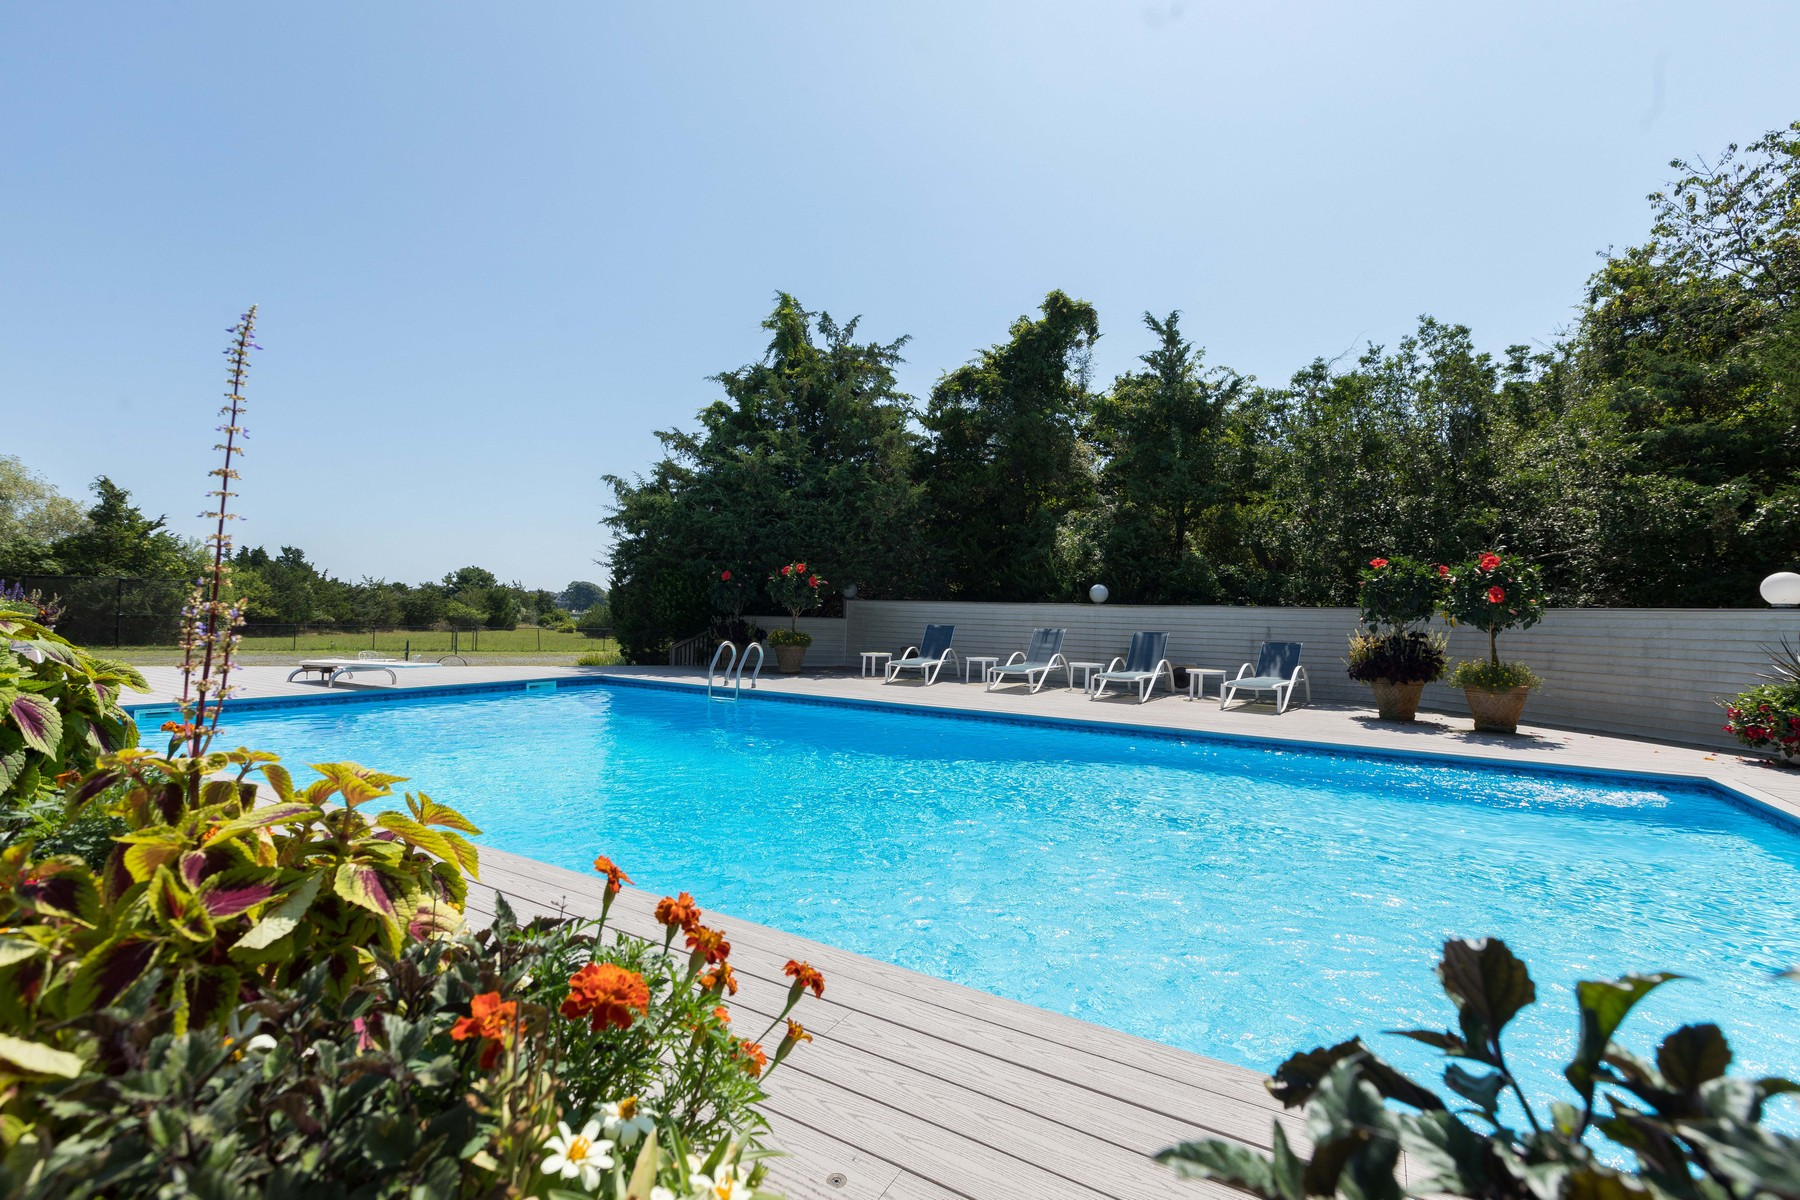 Single Family Homes for Active at Westhampton 10&12 Apaucuck Cove Lane Westhampton, New York 11977 United States